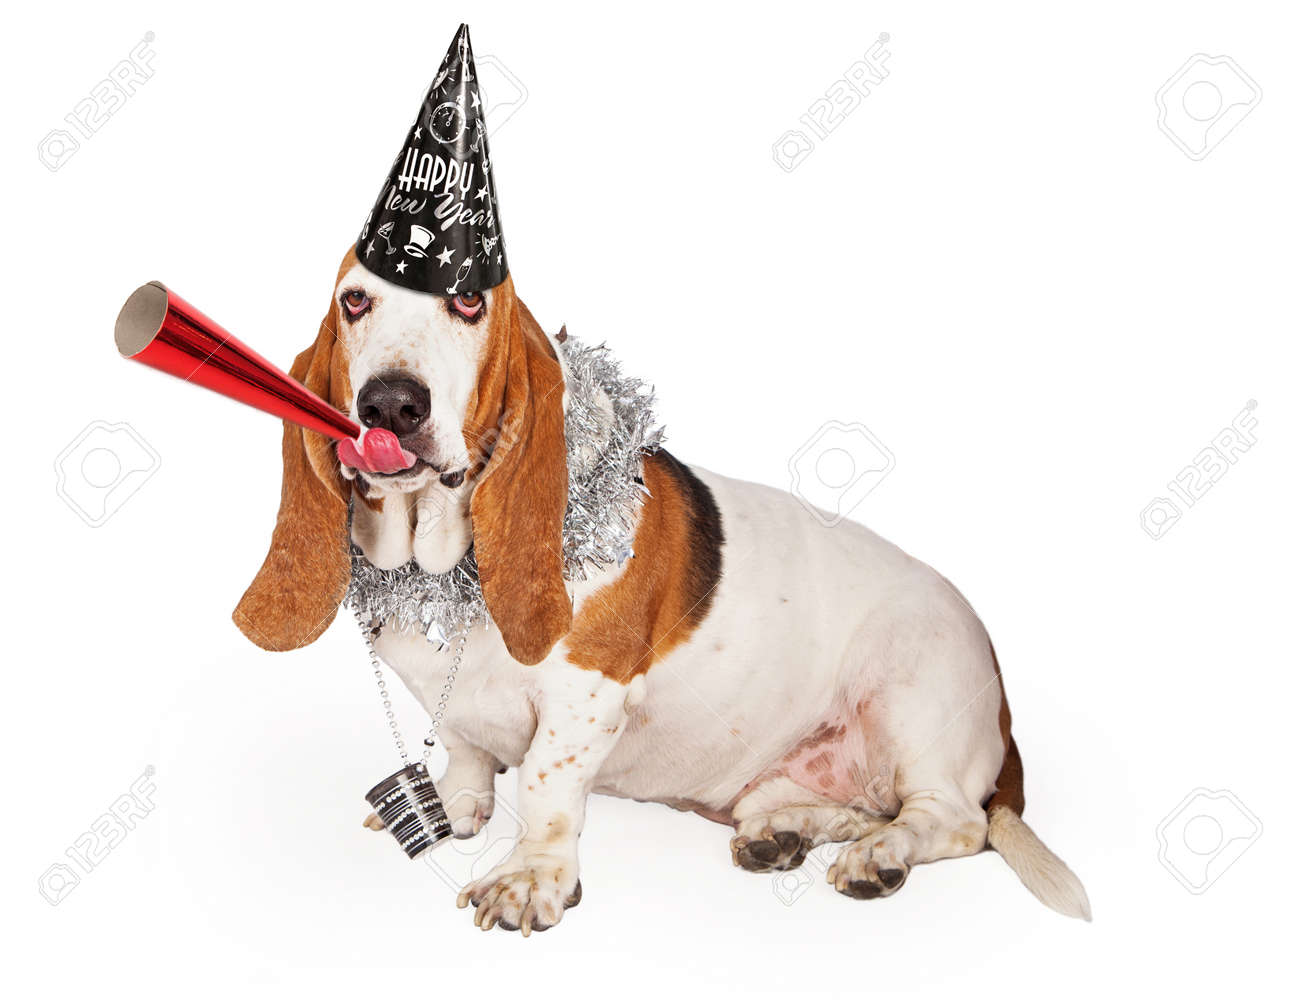 a funny basset hound dog wearing a happy new years hat and party necklace while blowing